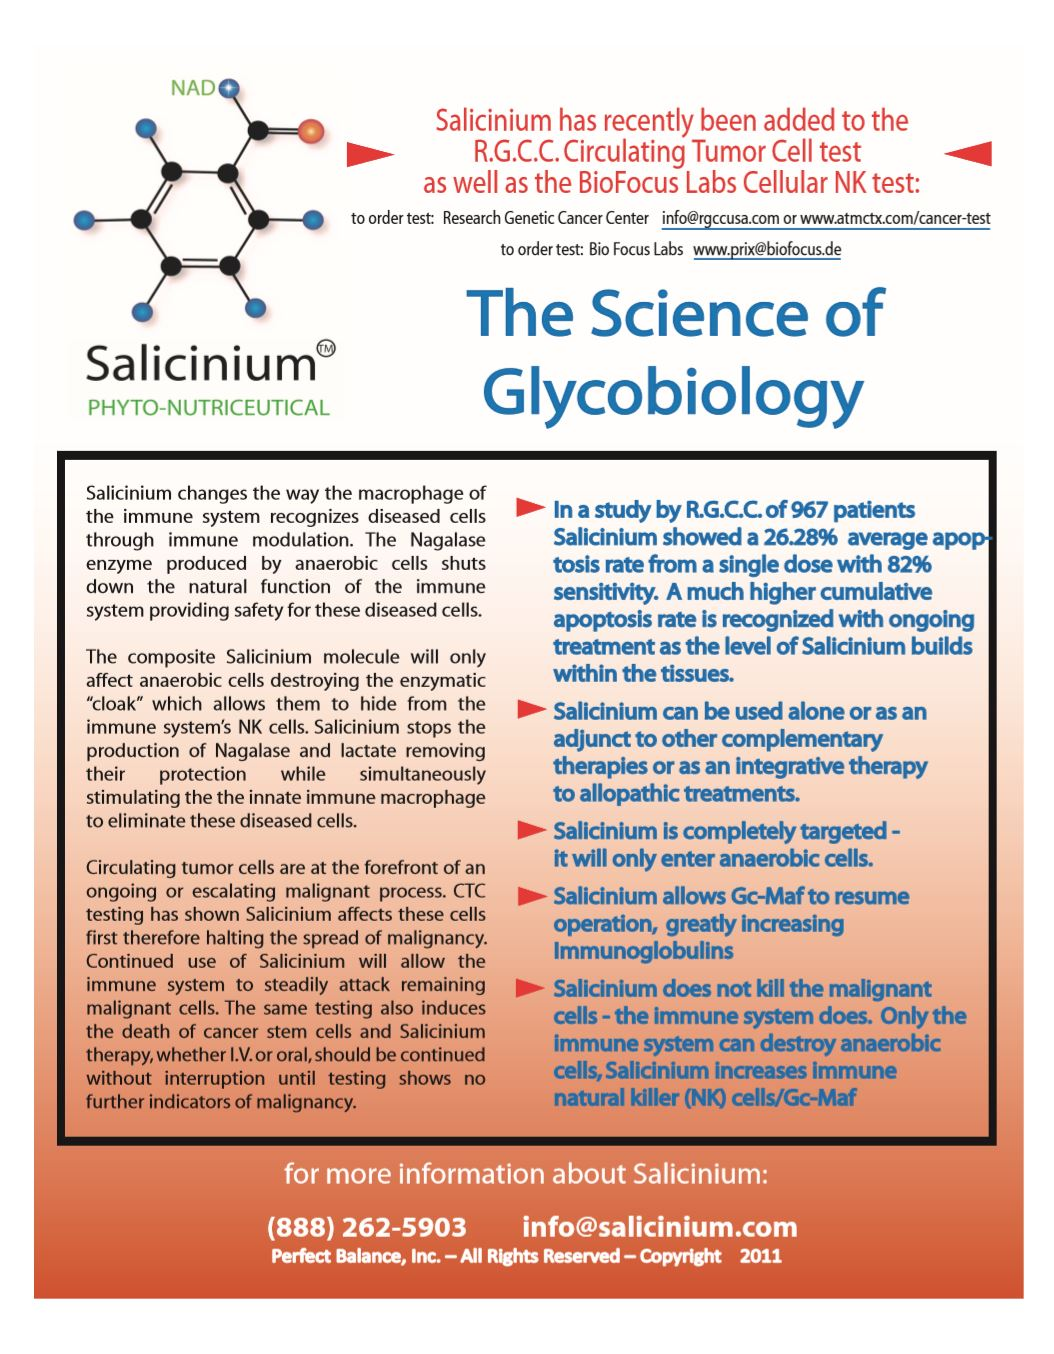 Salicinium Ad A) Science of Glycobiology.JPG